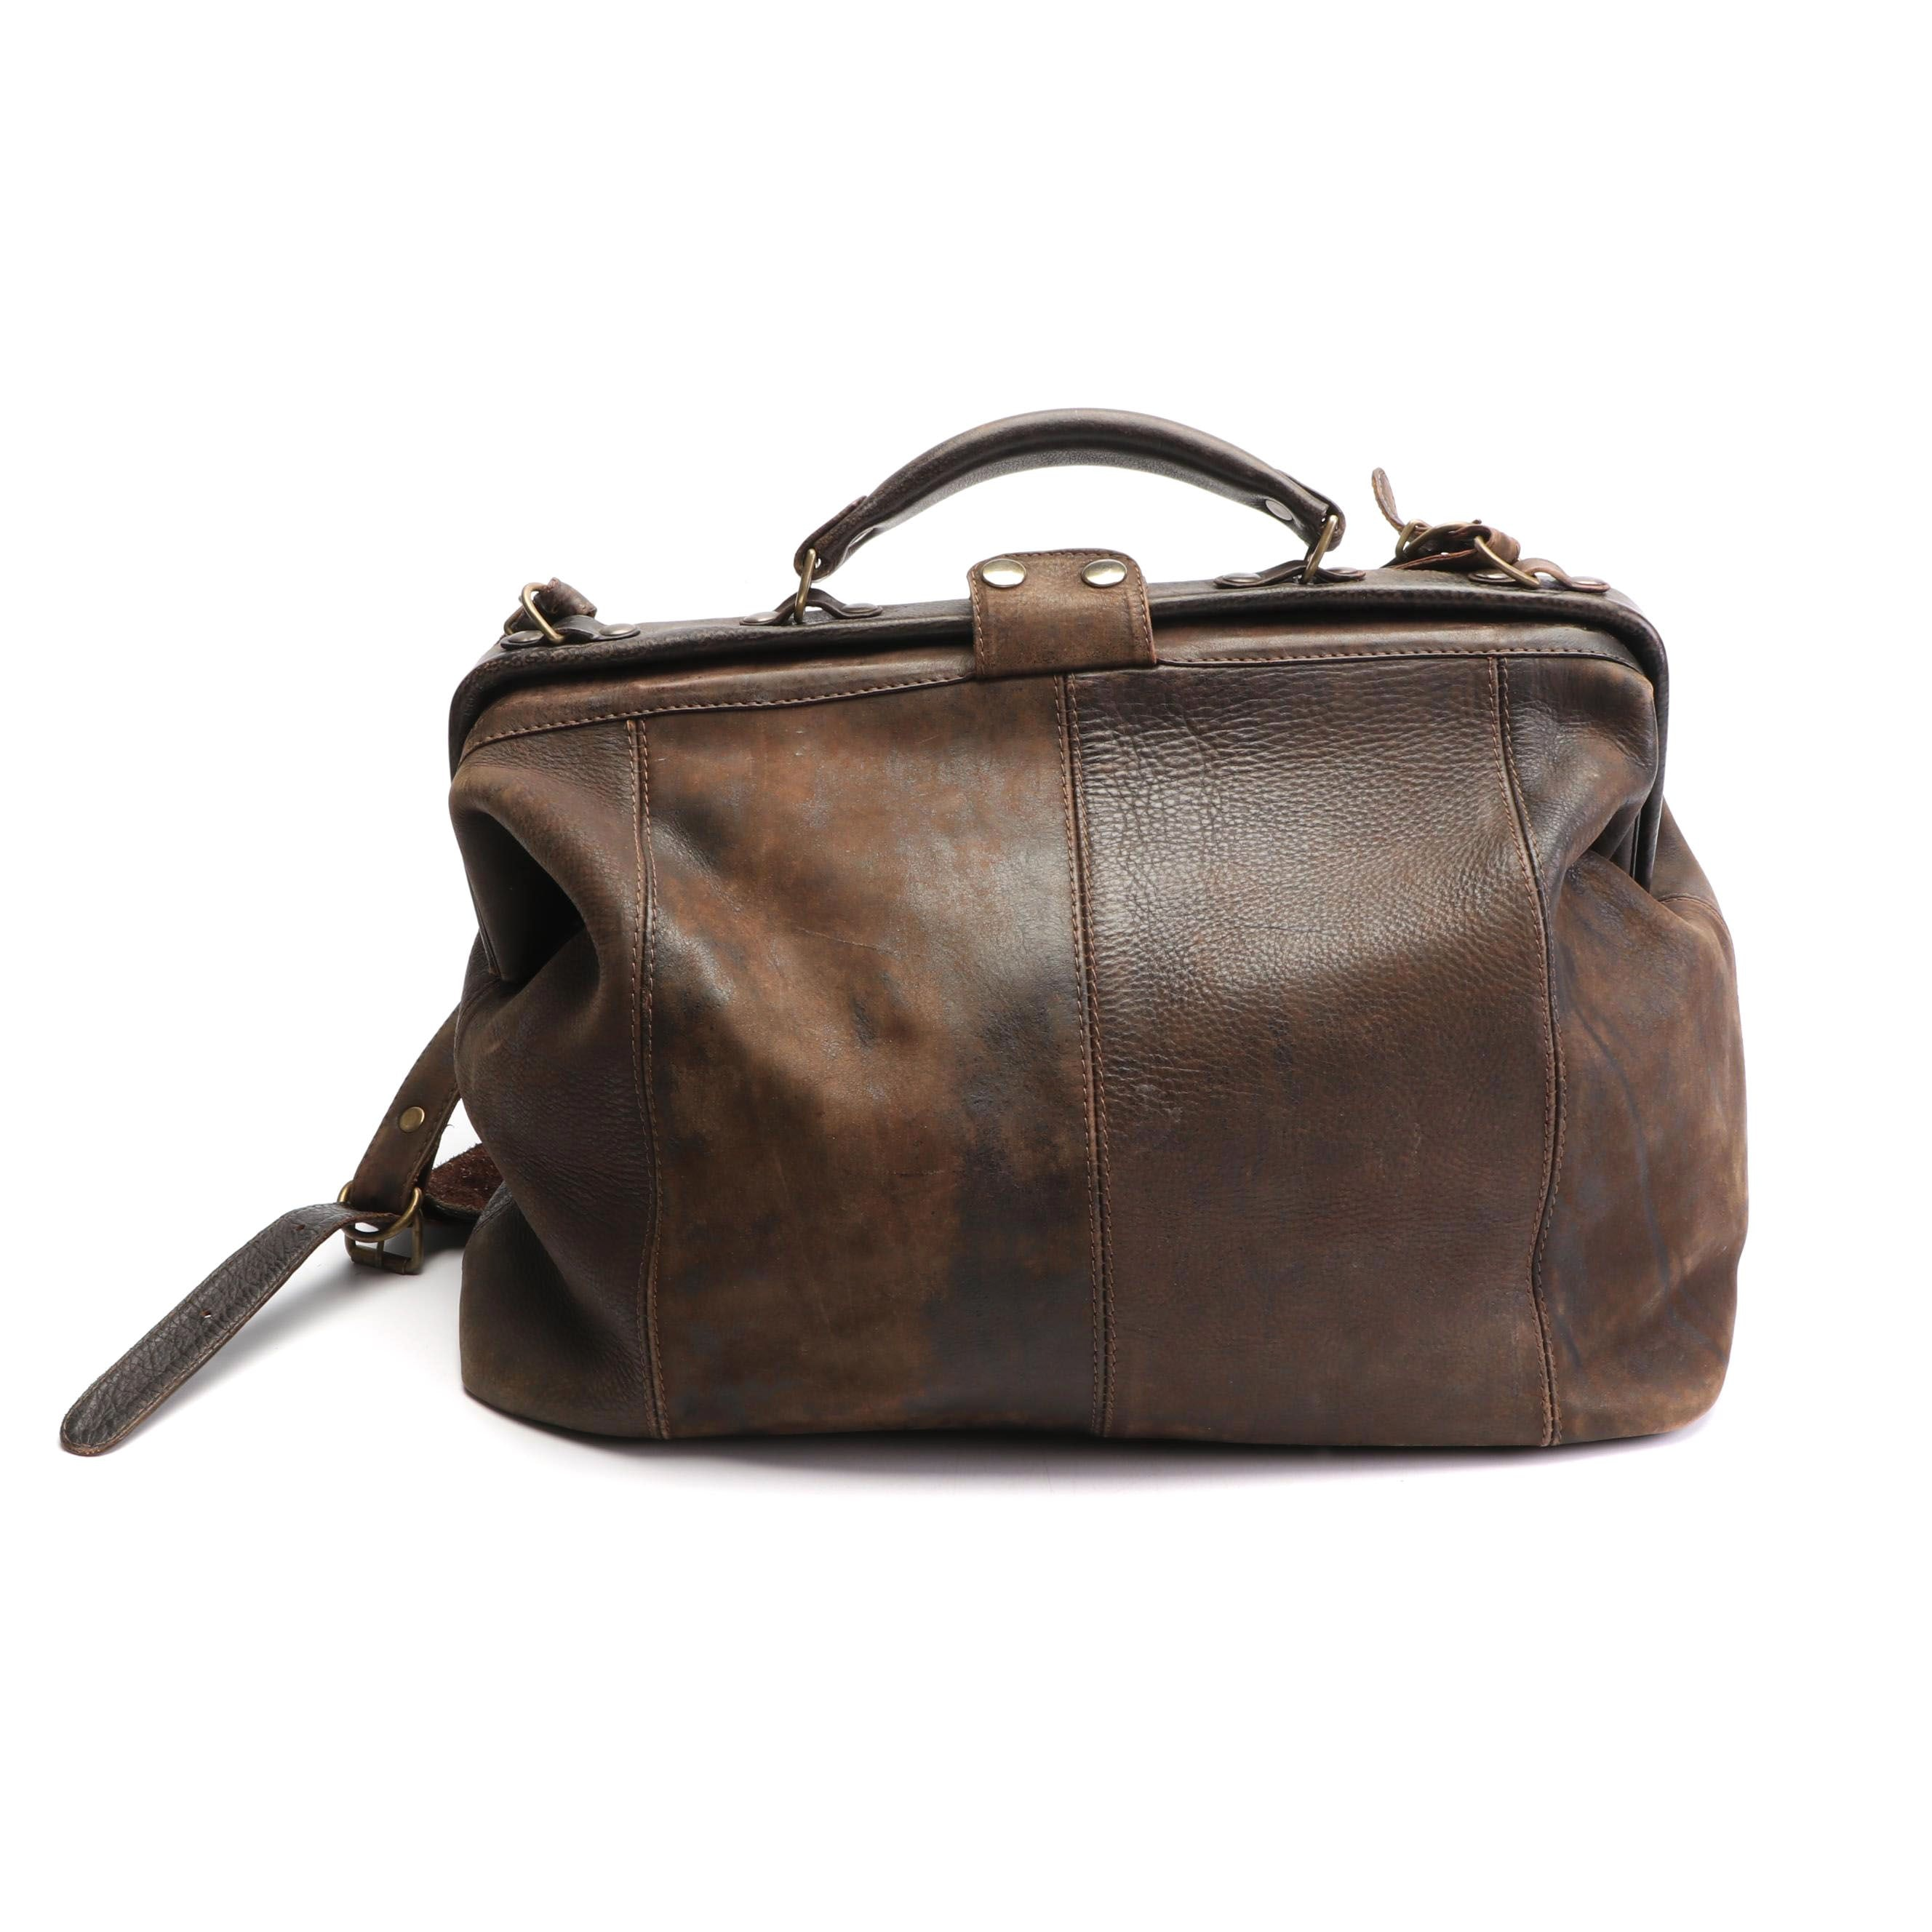 Hobo International Distressed Brown Leather Doctor's Style Bag